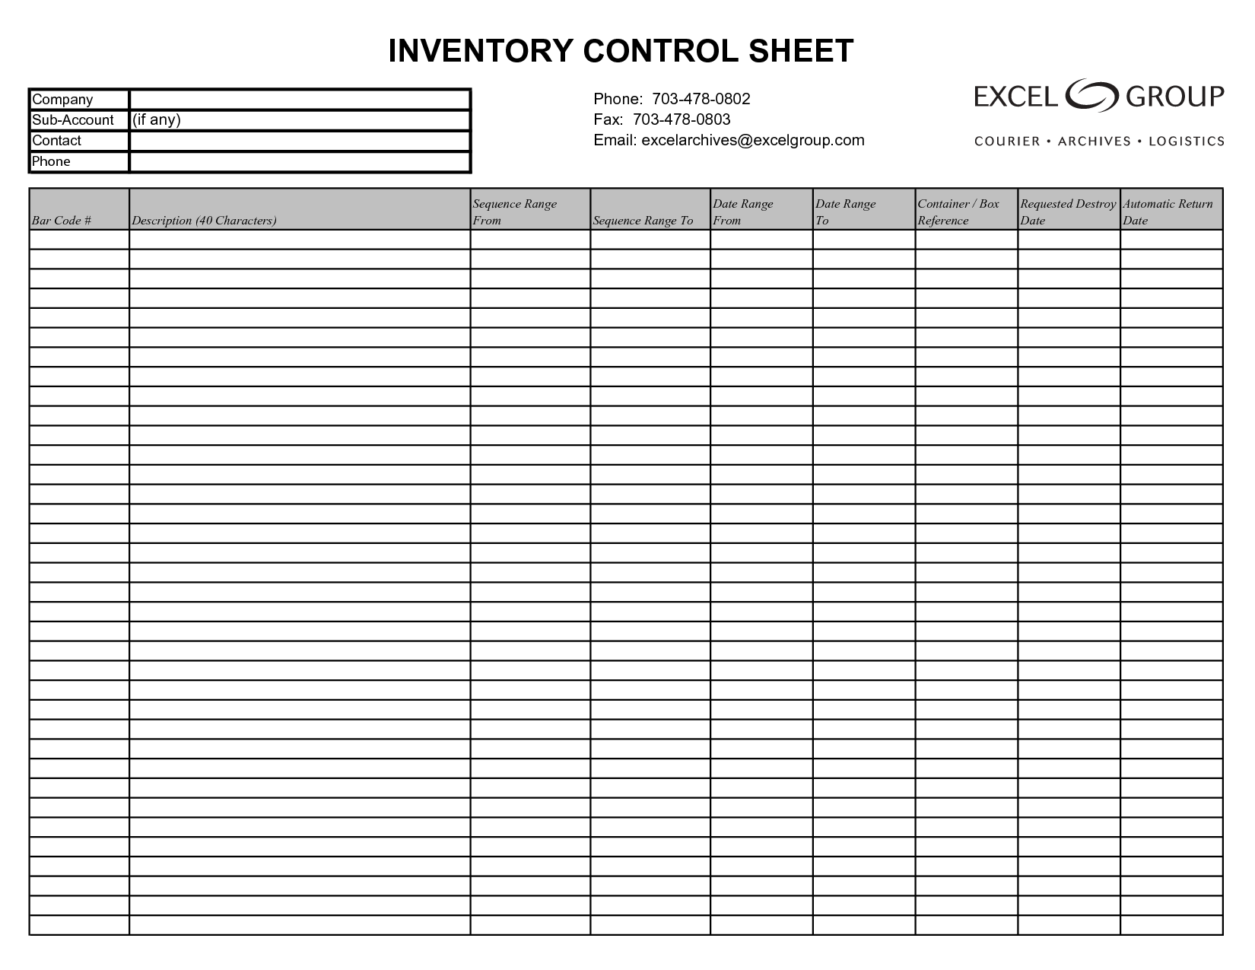 Free Inventory Management Template Excel Free Printable Inventory List Free Inventory List Forms Small Business Inventory Spreadsheet Template Excel Inventory Tracking Template Stock Inventory Excel Template Inventory Tracking Software  Free Inventory Management Template Excel Inventory Tracking Spreadsheet Template Tracking Spreadsheet Spreadsheet Templates for Busines